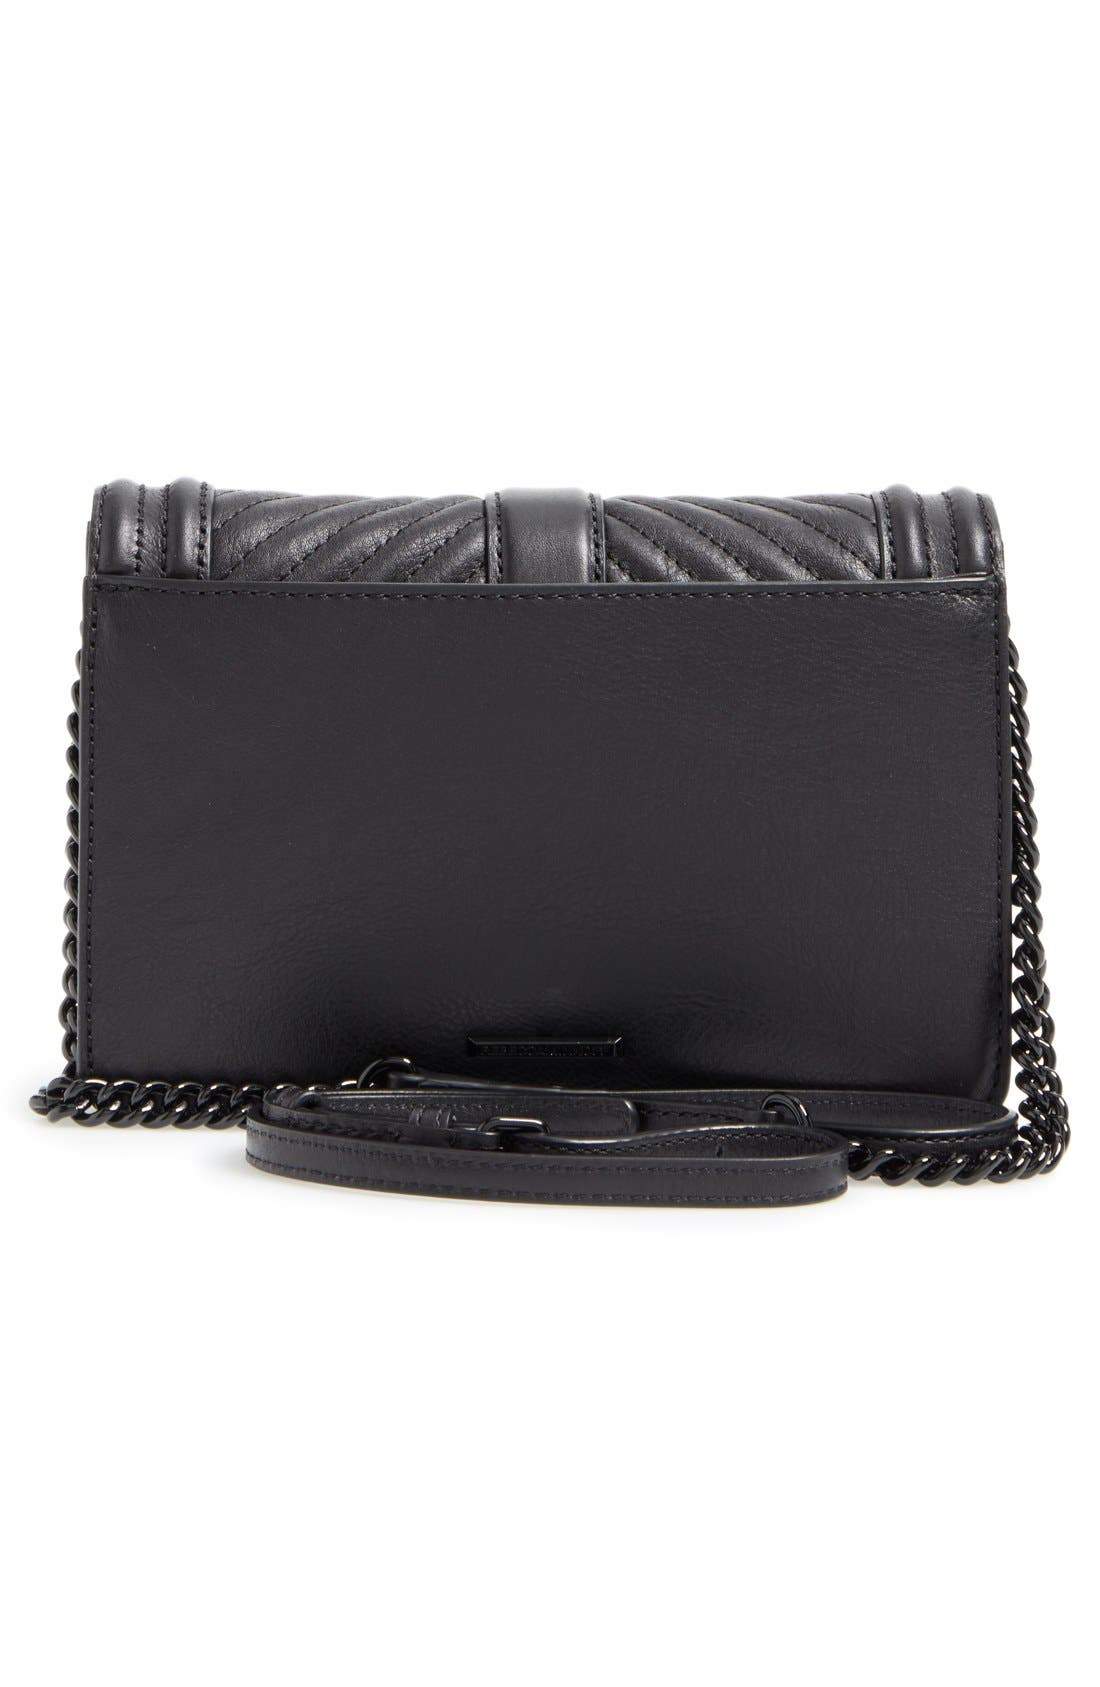 Alternate Image 3  - Rebecca Minkoff Small Love Leather Crossbody Bag